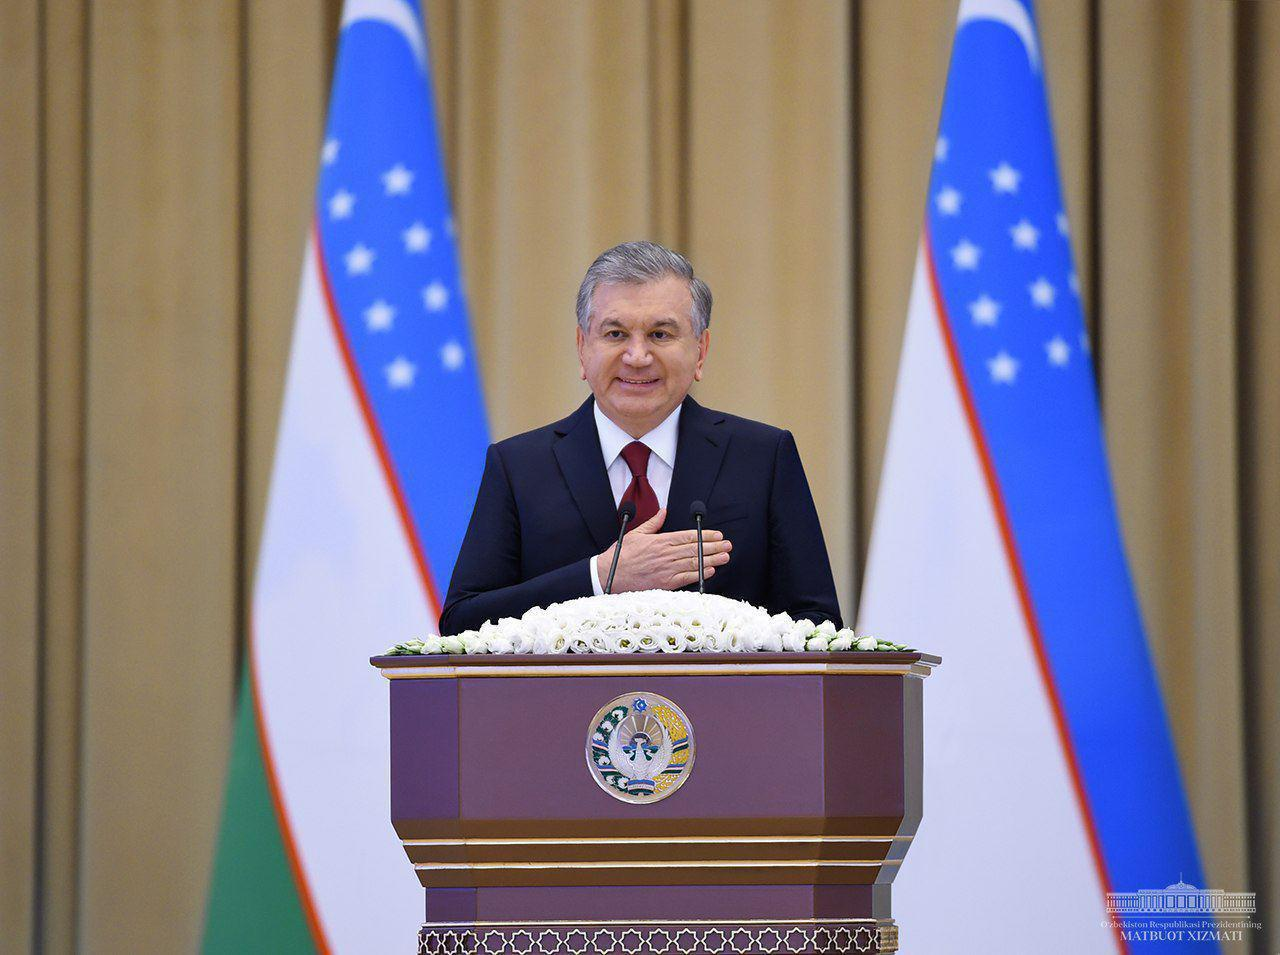 Office of the President of the Republic of Uzbekistan